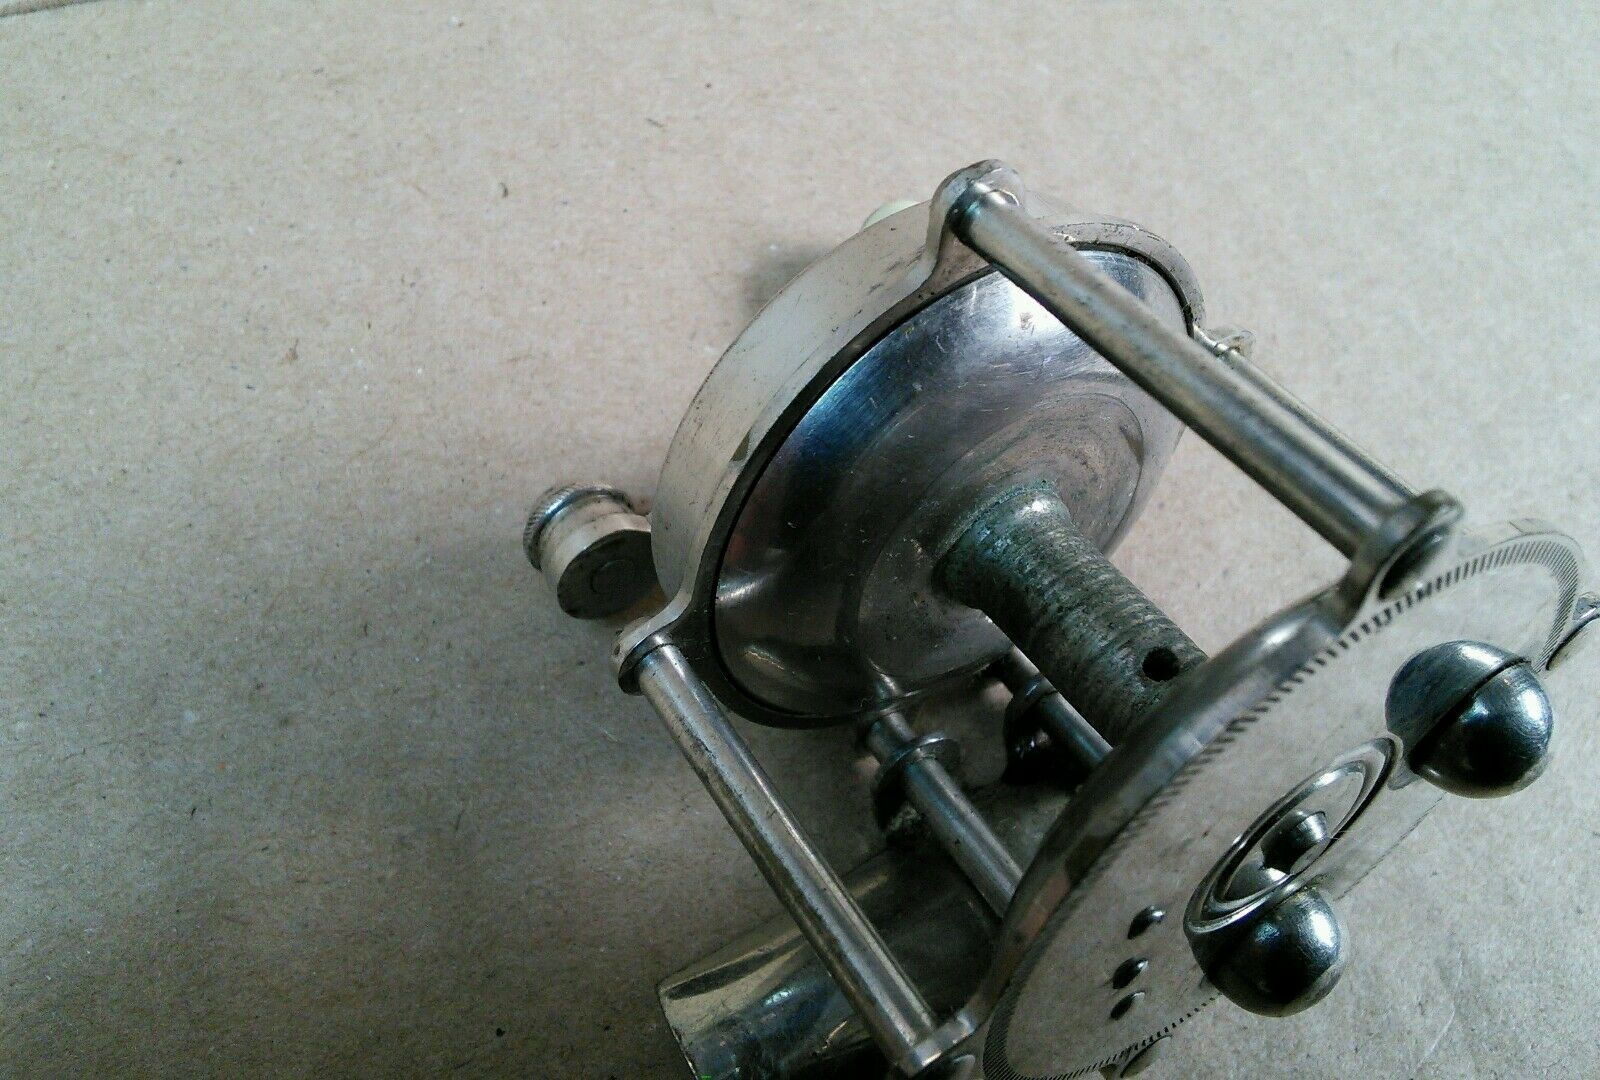 Vintage arbeco stainless small stainless arbeco steel reel e3430a